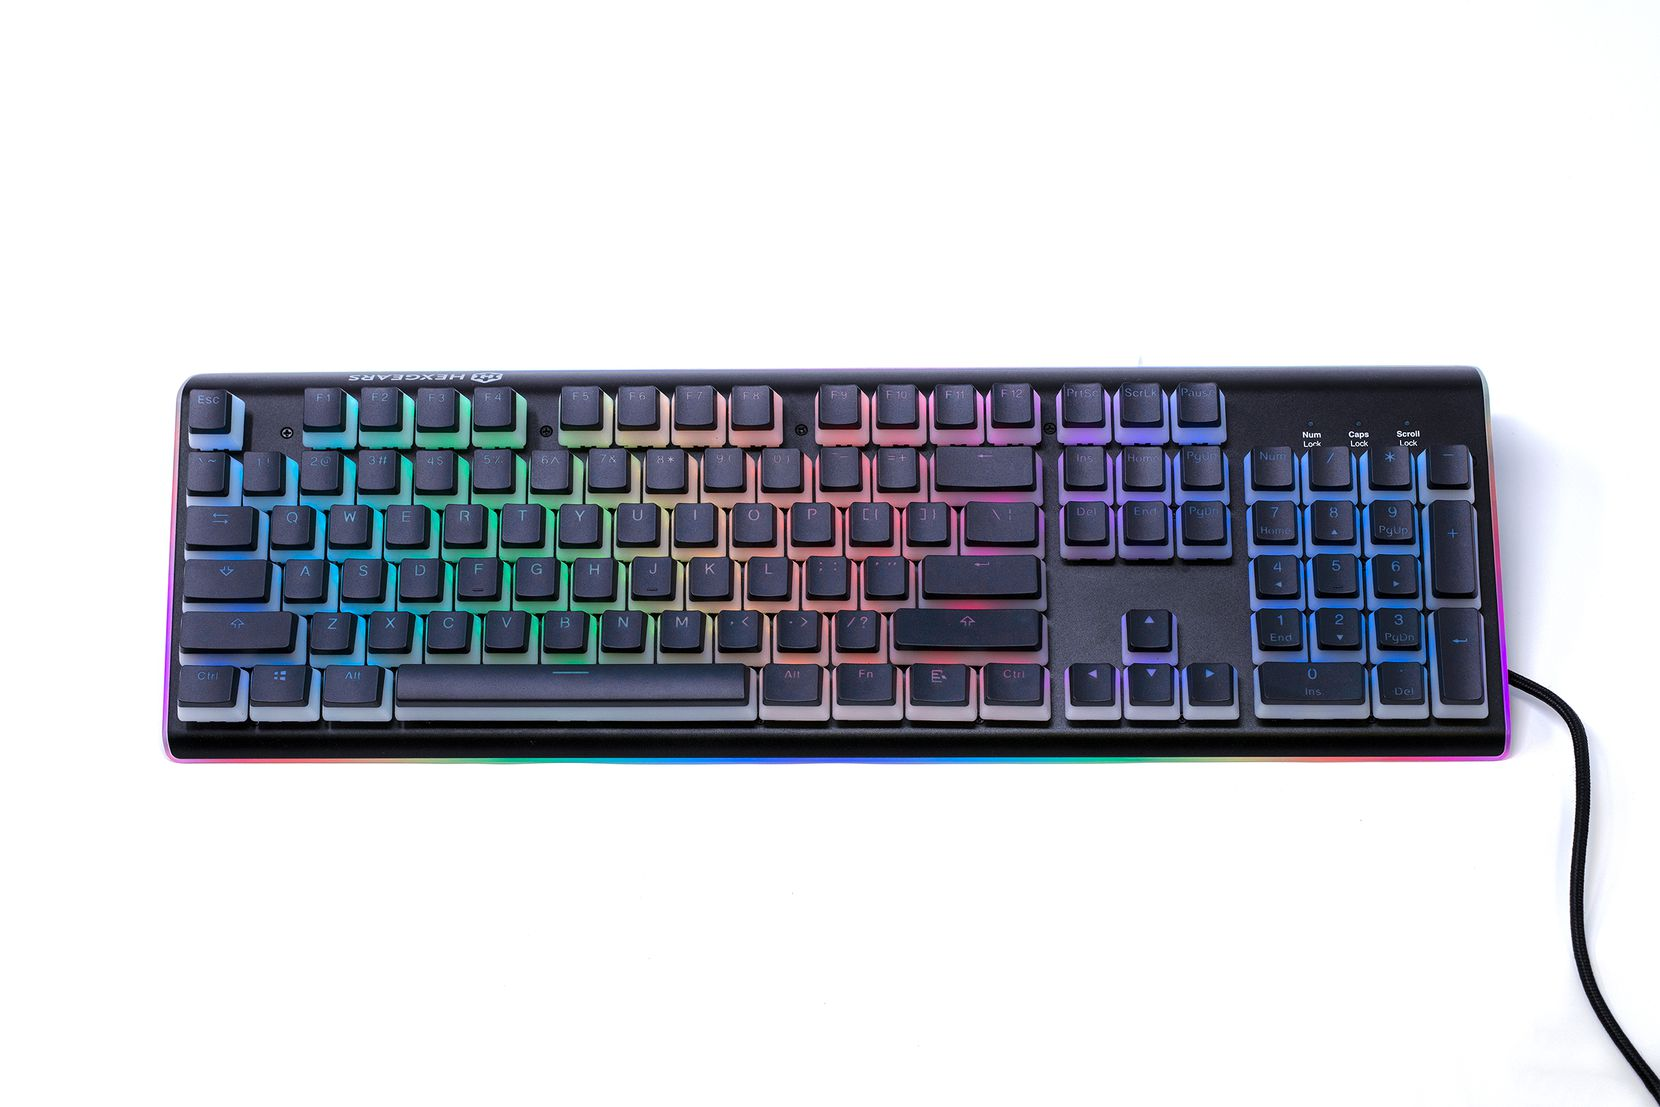 The color back lighting of the keys is intense but can be adjusted.